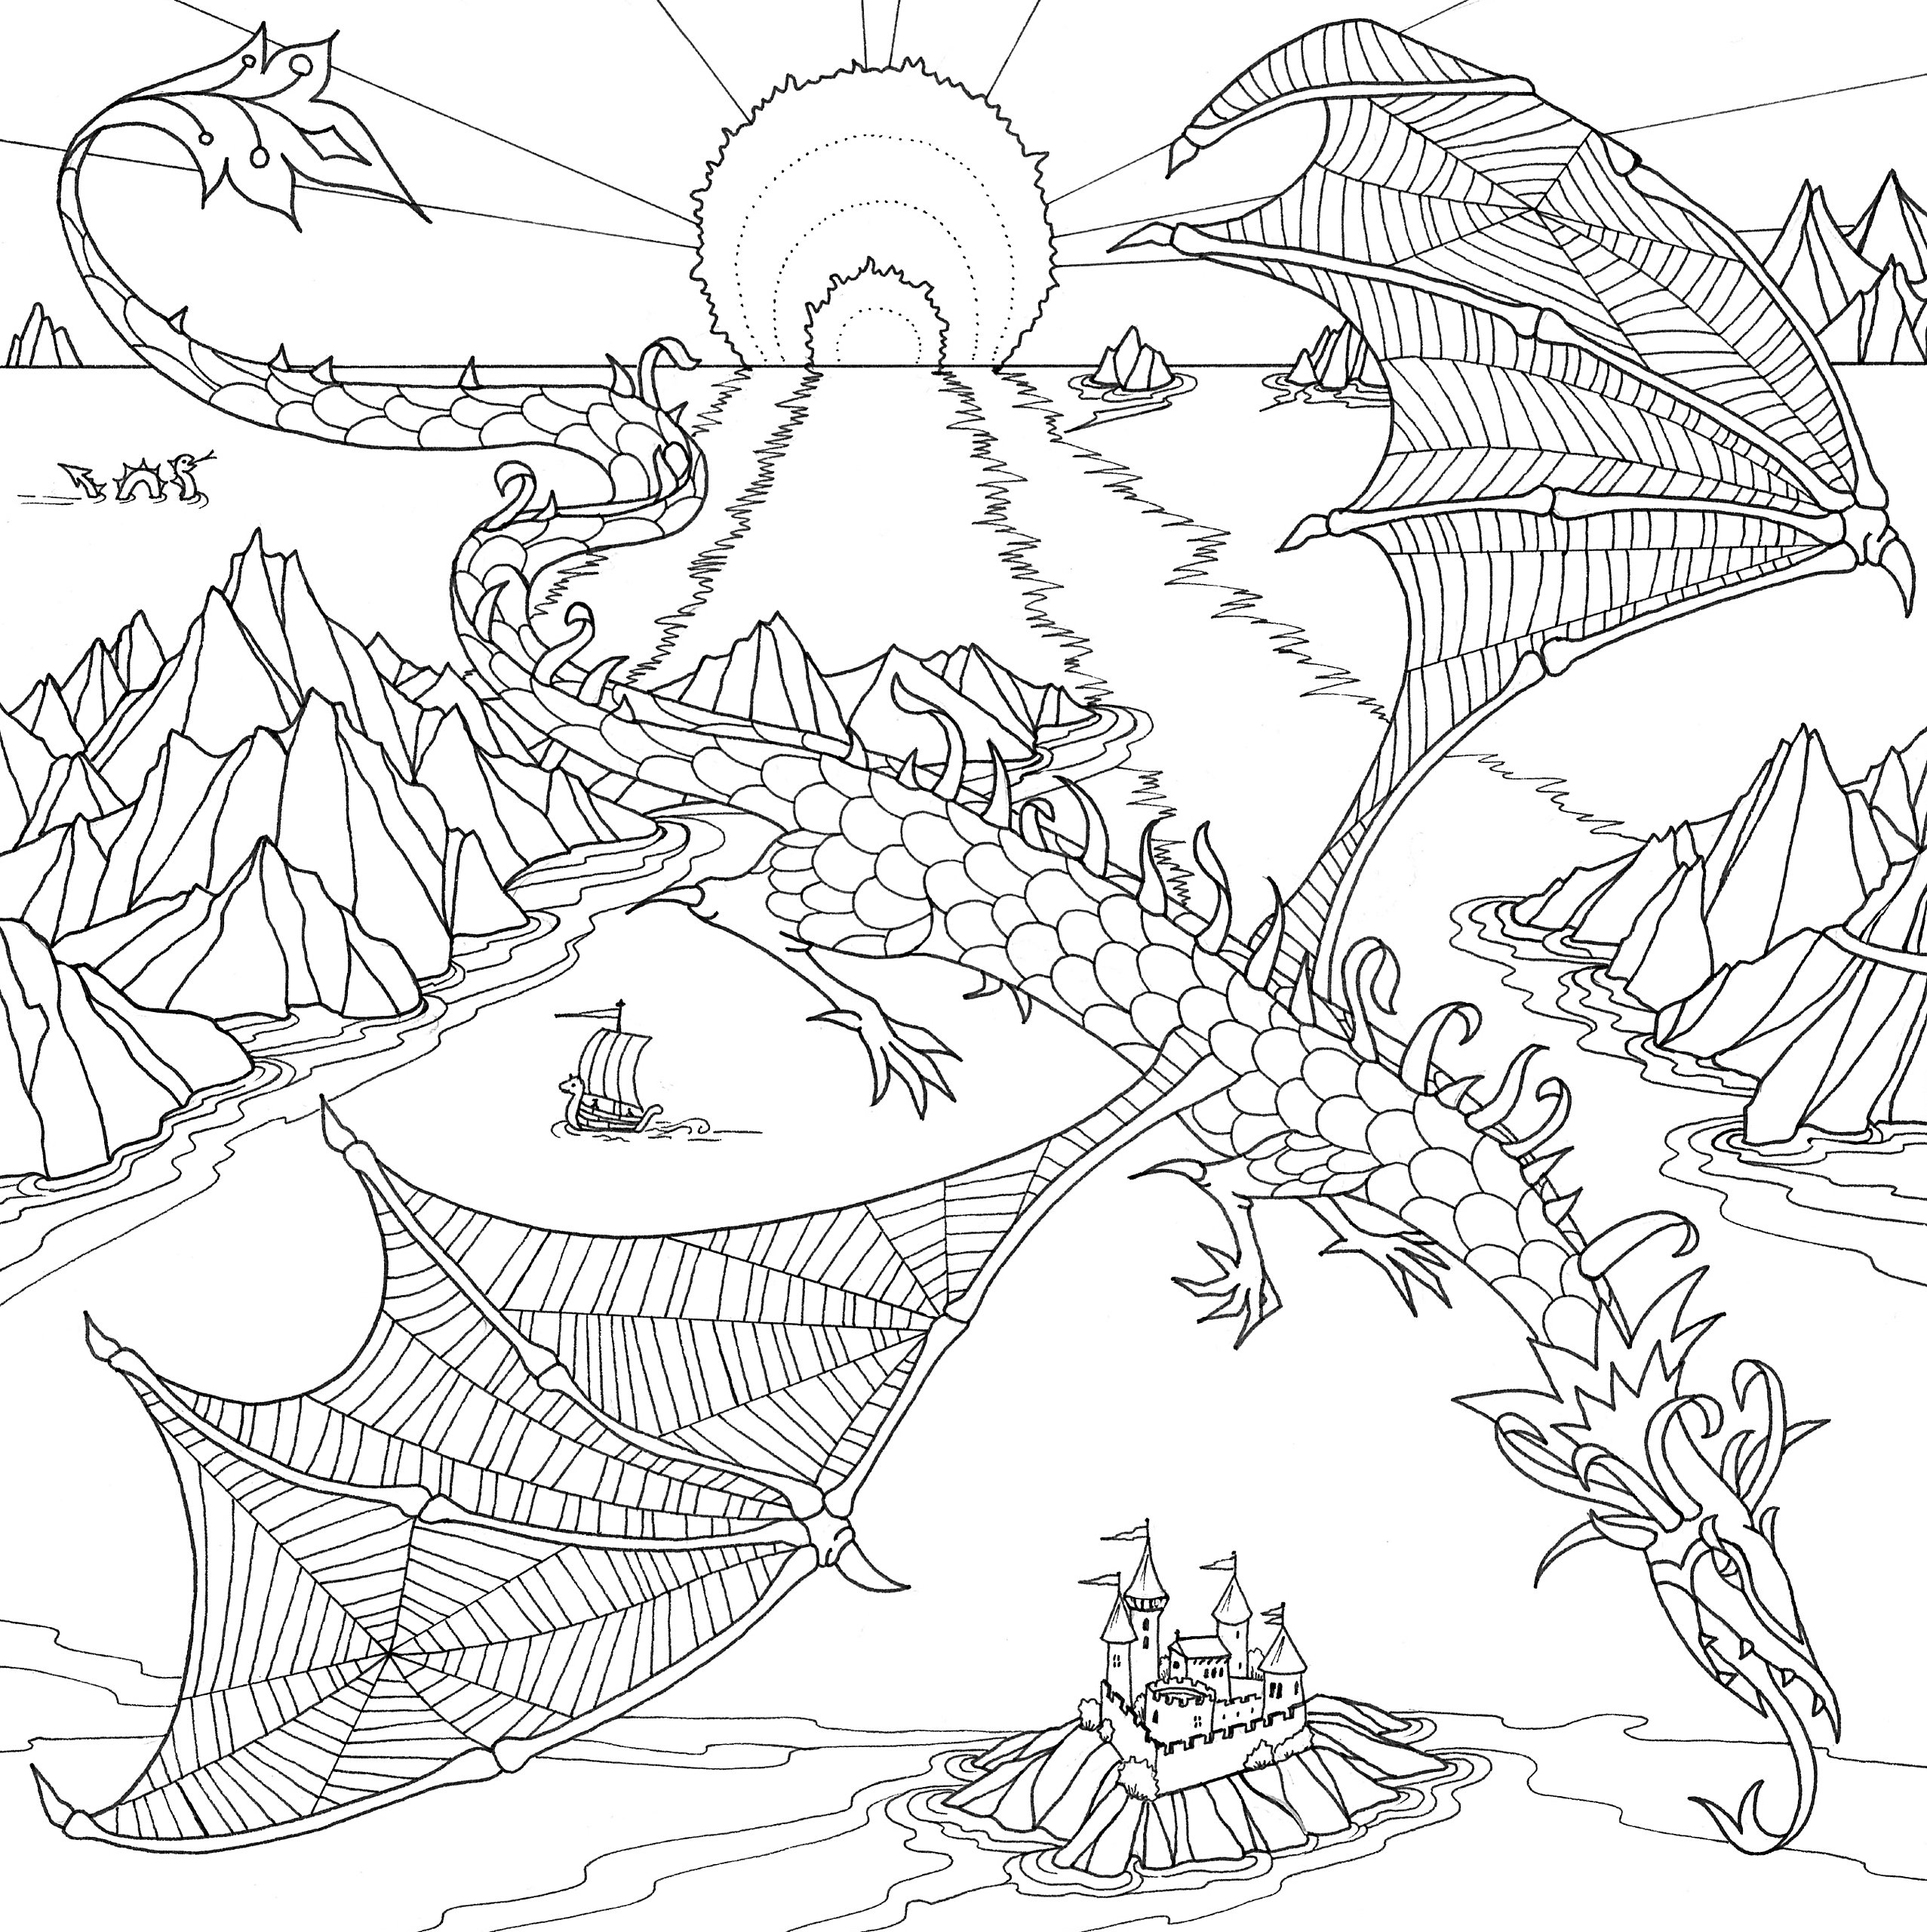 dragons coloring book 31 stress relieving designs studio